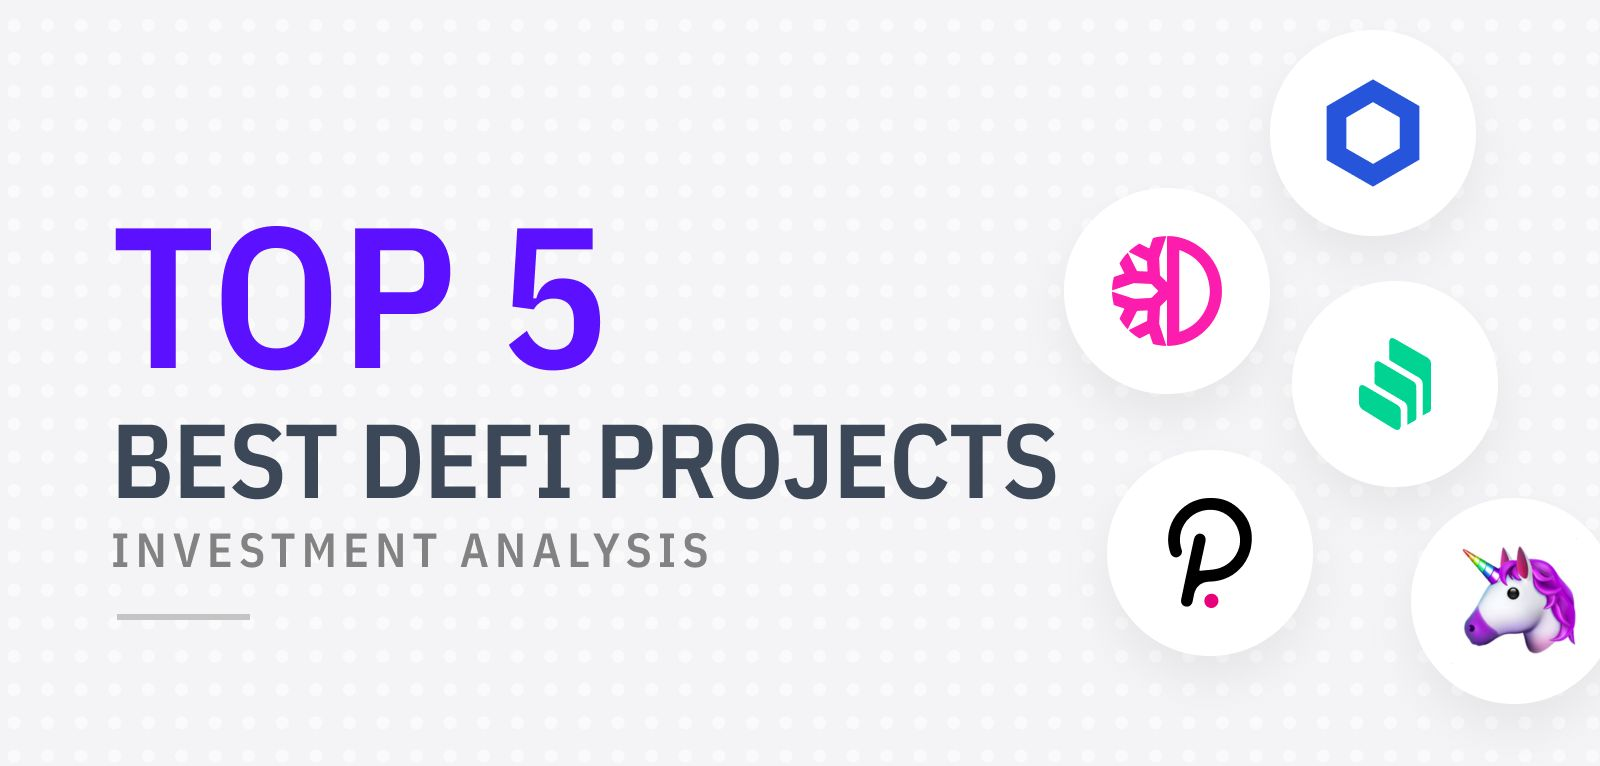 /looking-to-invest-in-a-defi-project-here-are-5-ideas-worth-considering-dv363w6d feature image